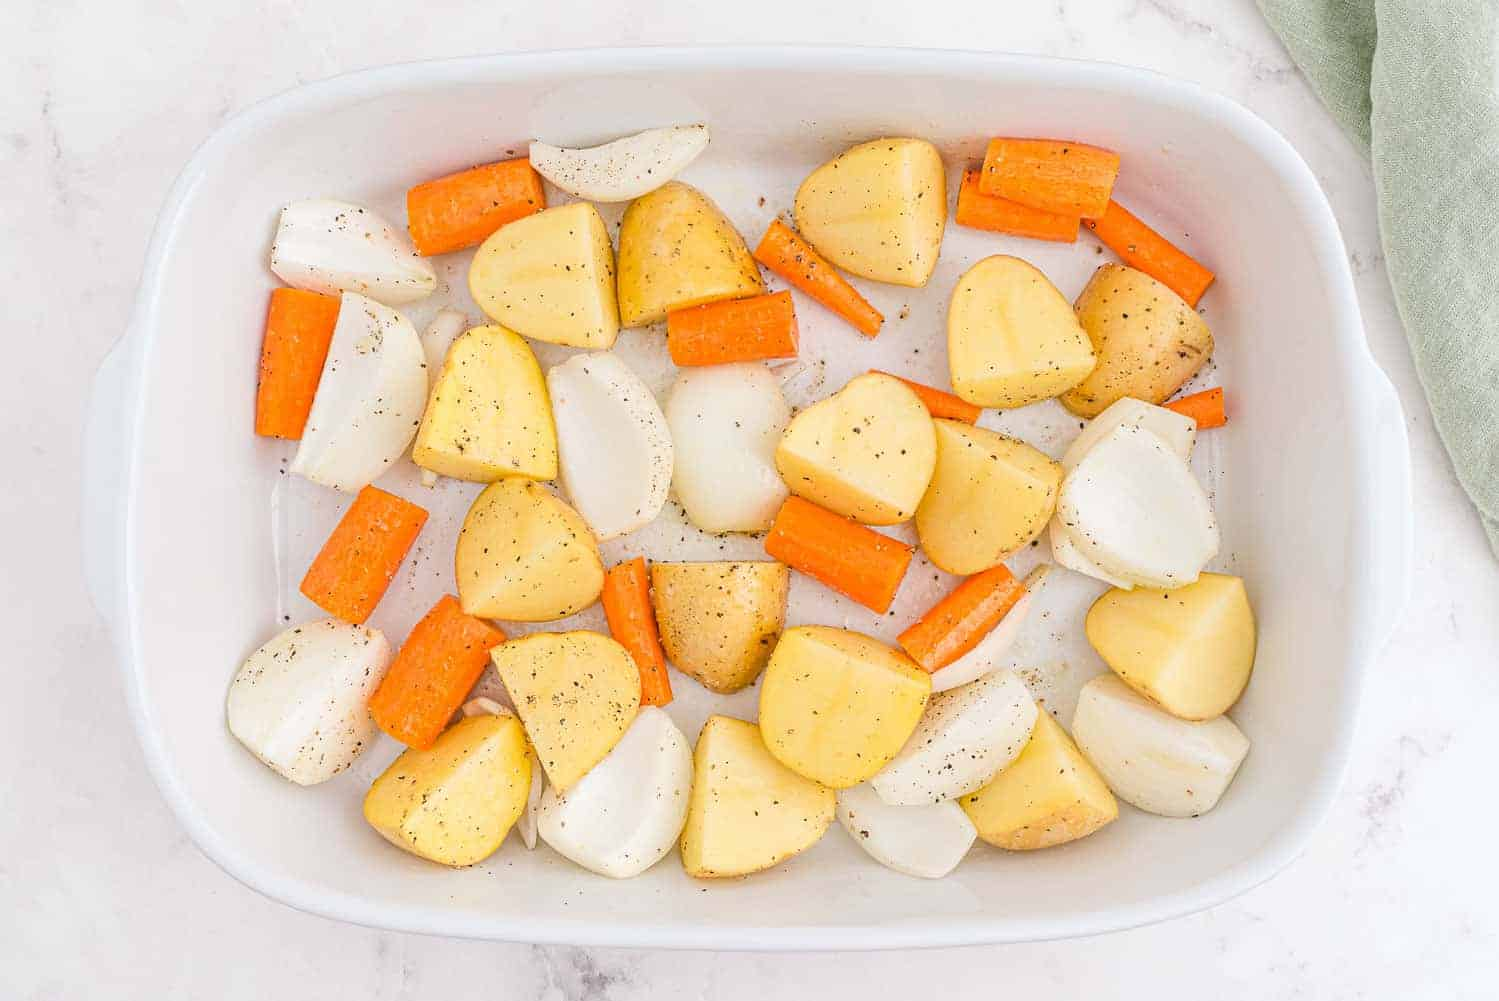 Potatoes, onions, and carrots in a white baking dish.